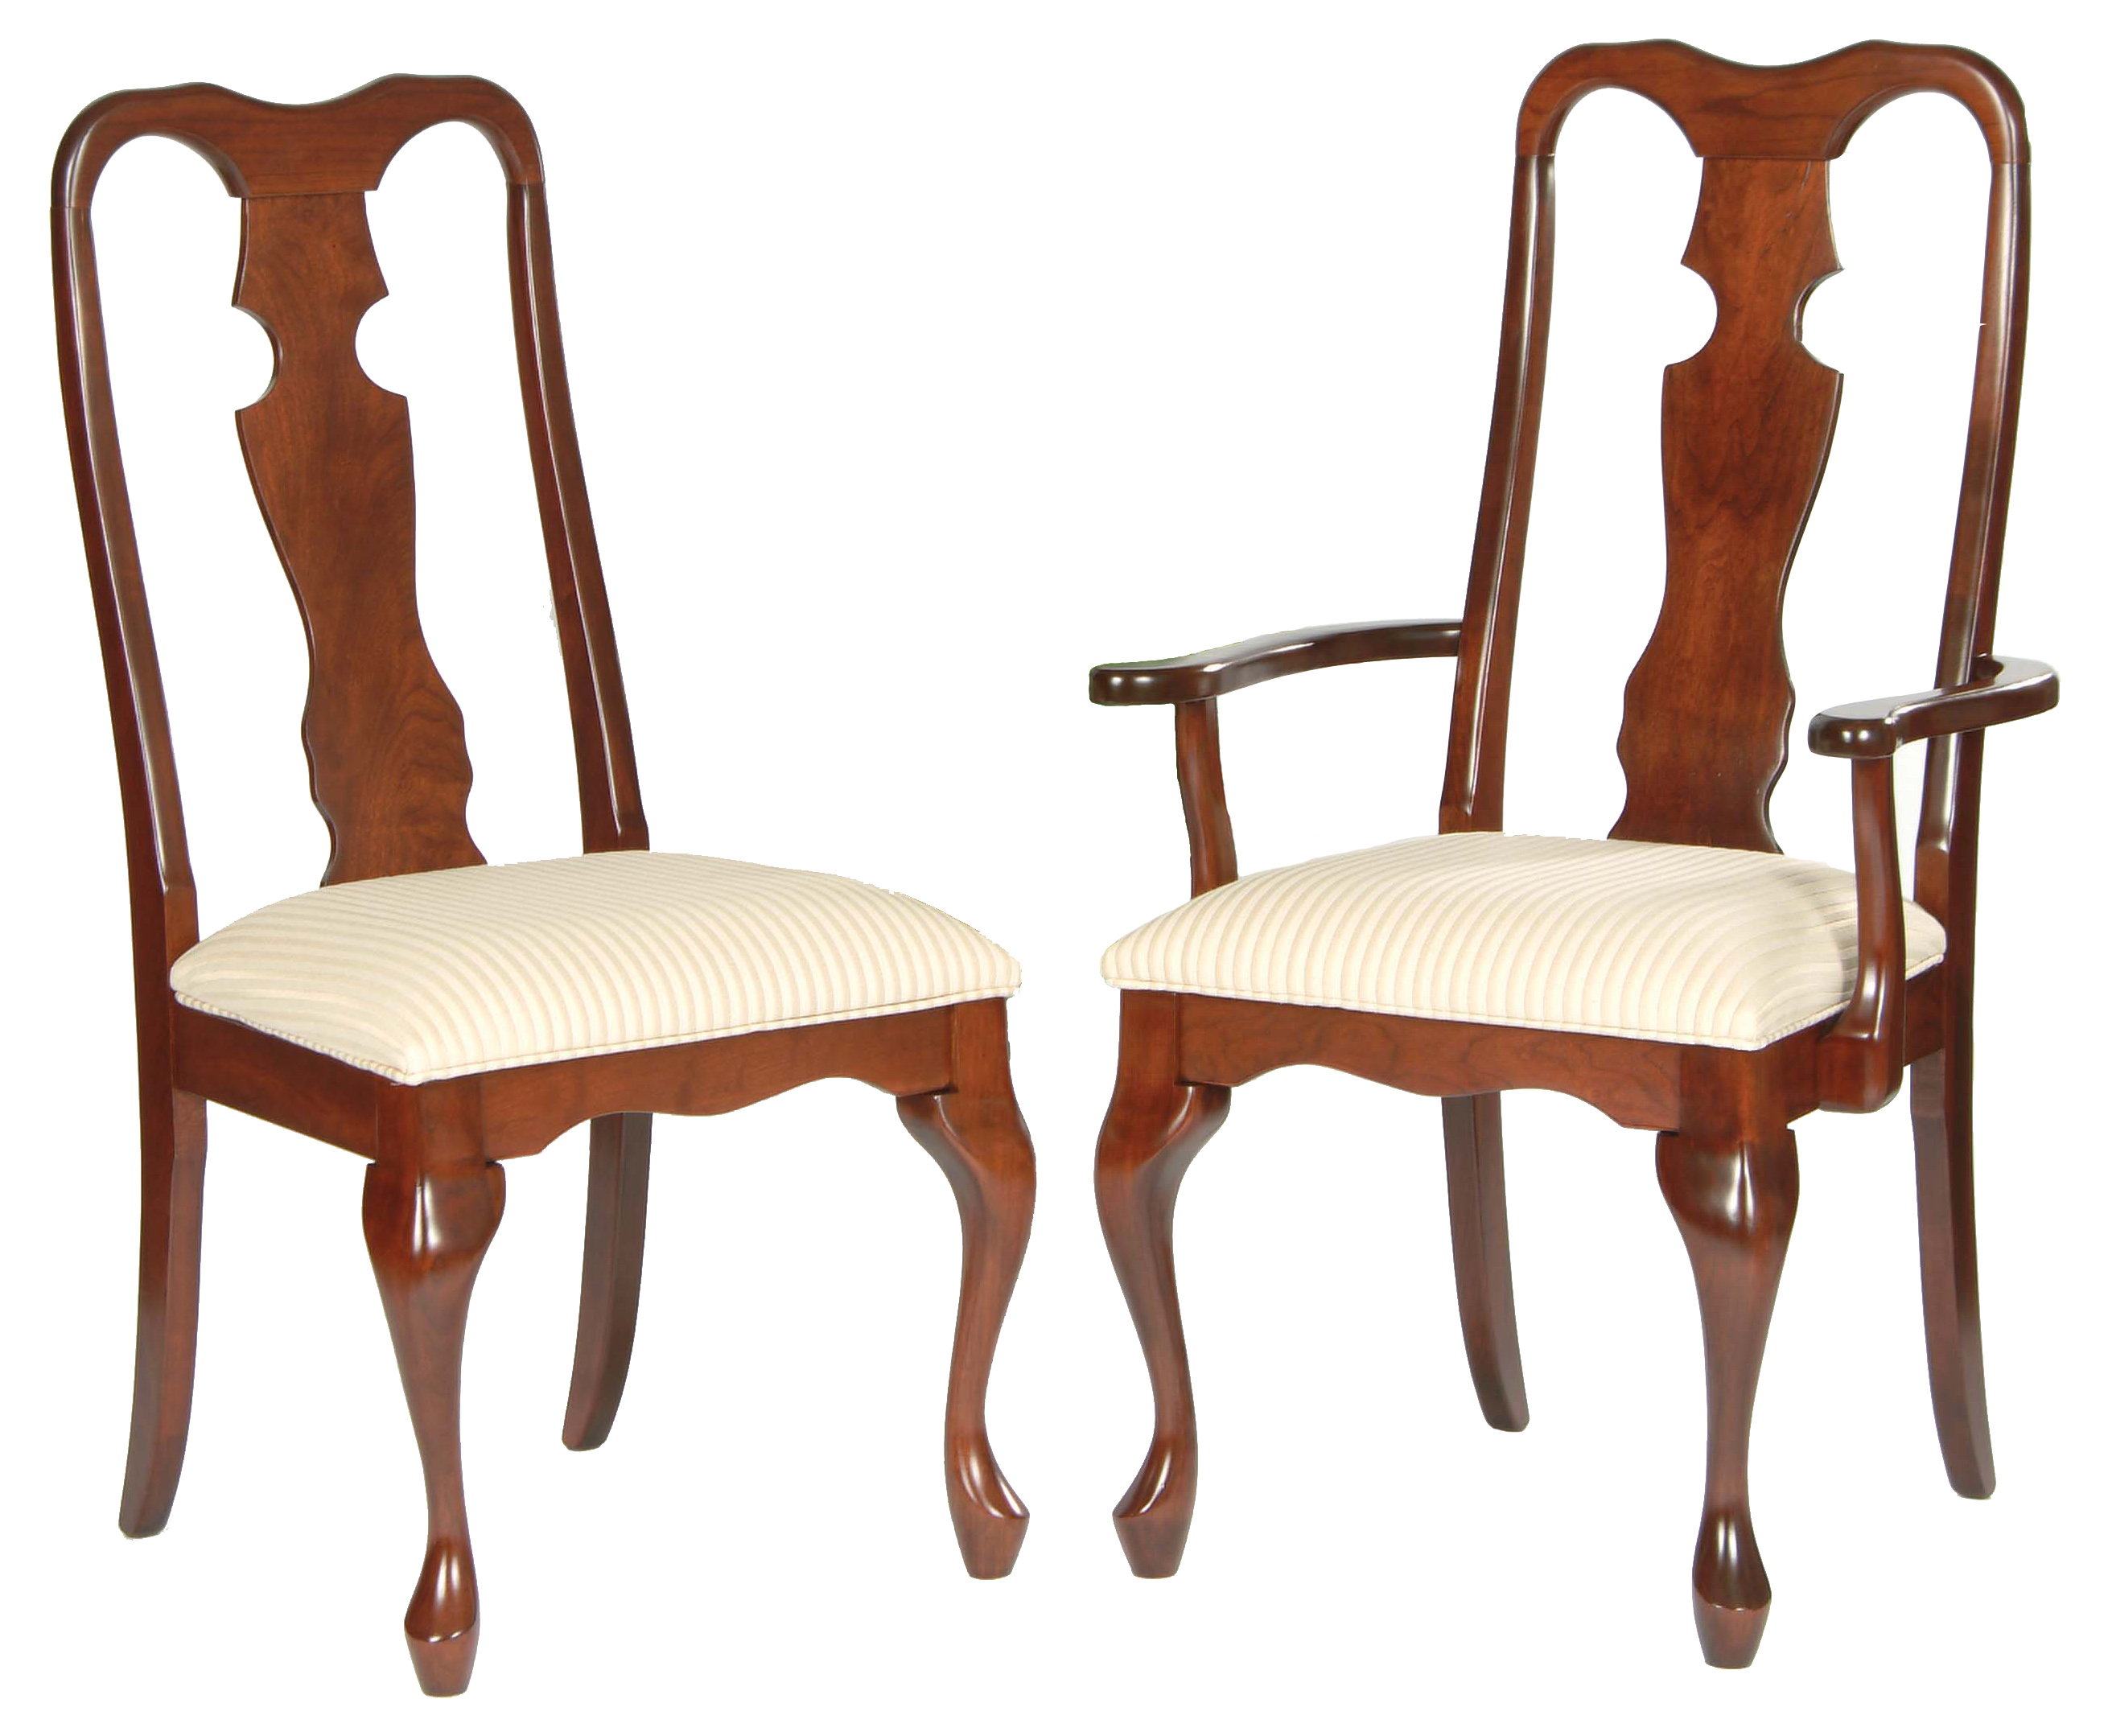 Image of: Queen Anne Dining Chairs Furniture